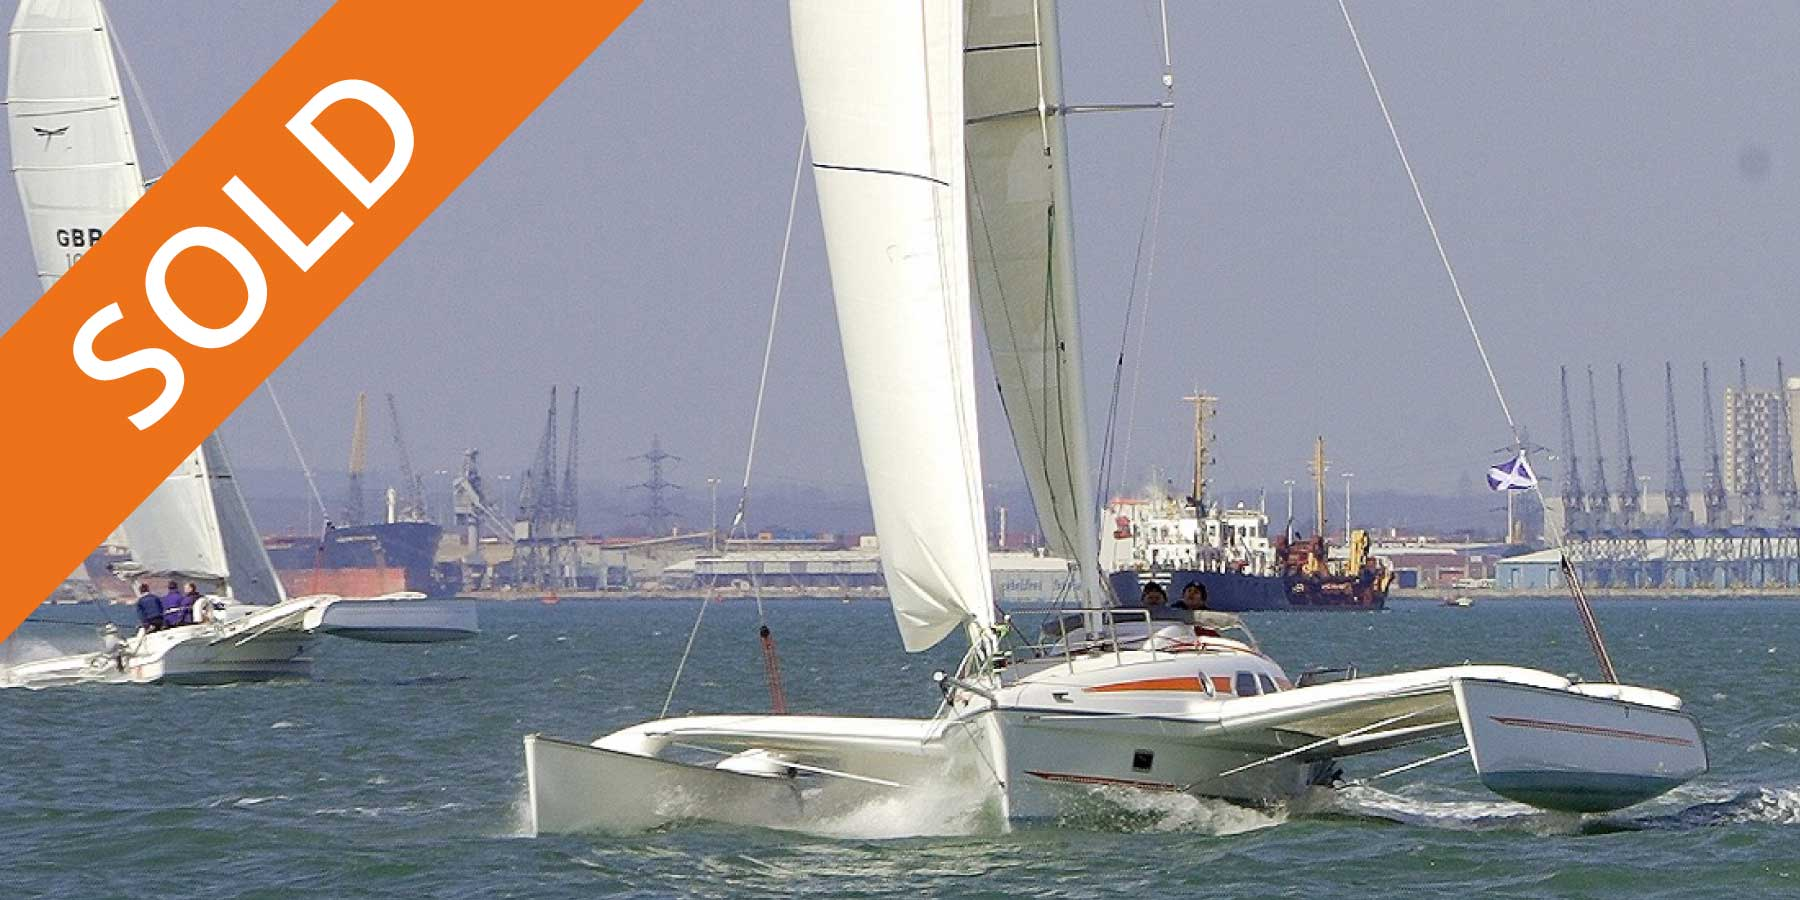 Dragonfly 920 trimaran now sold